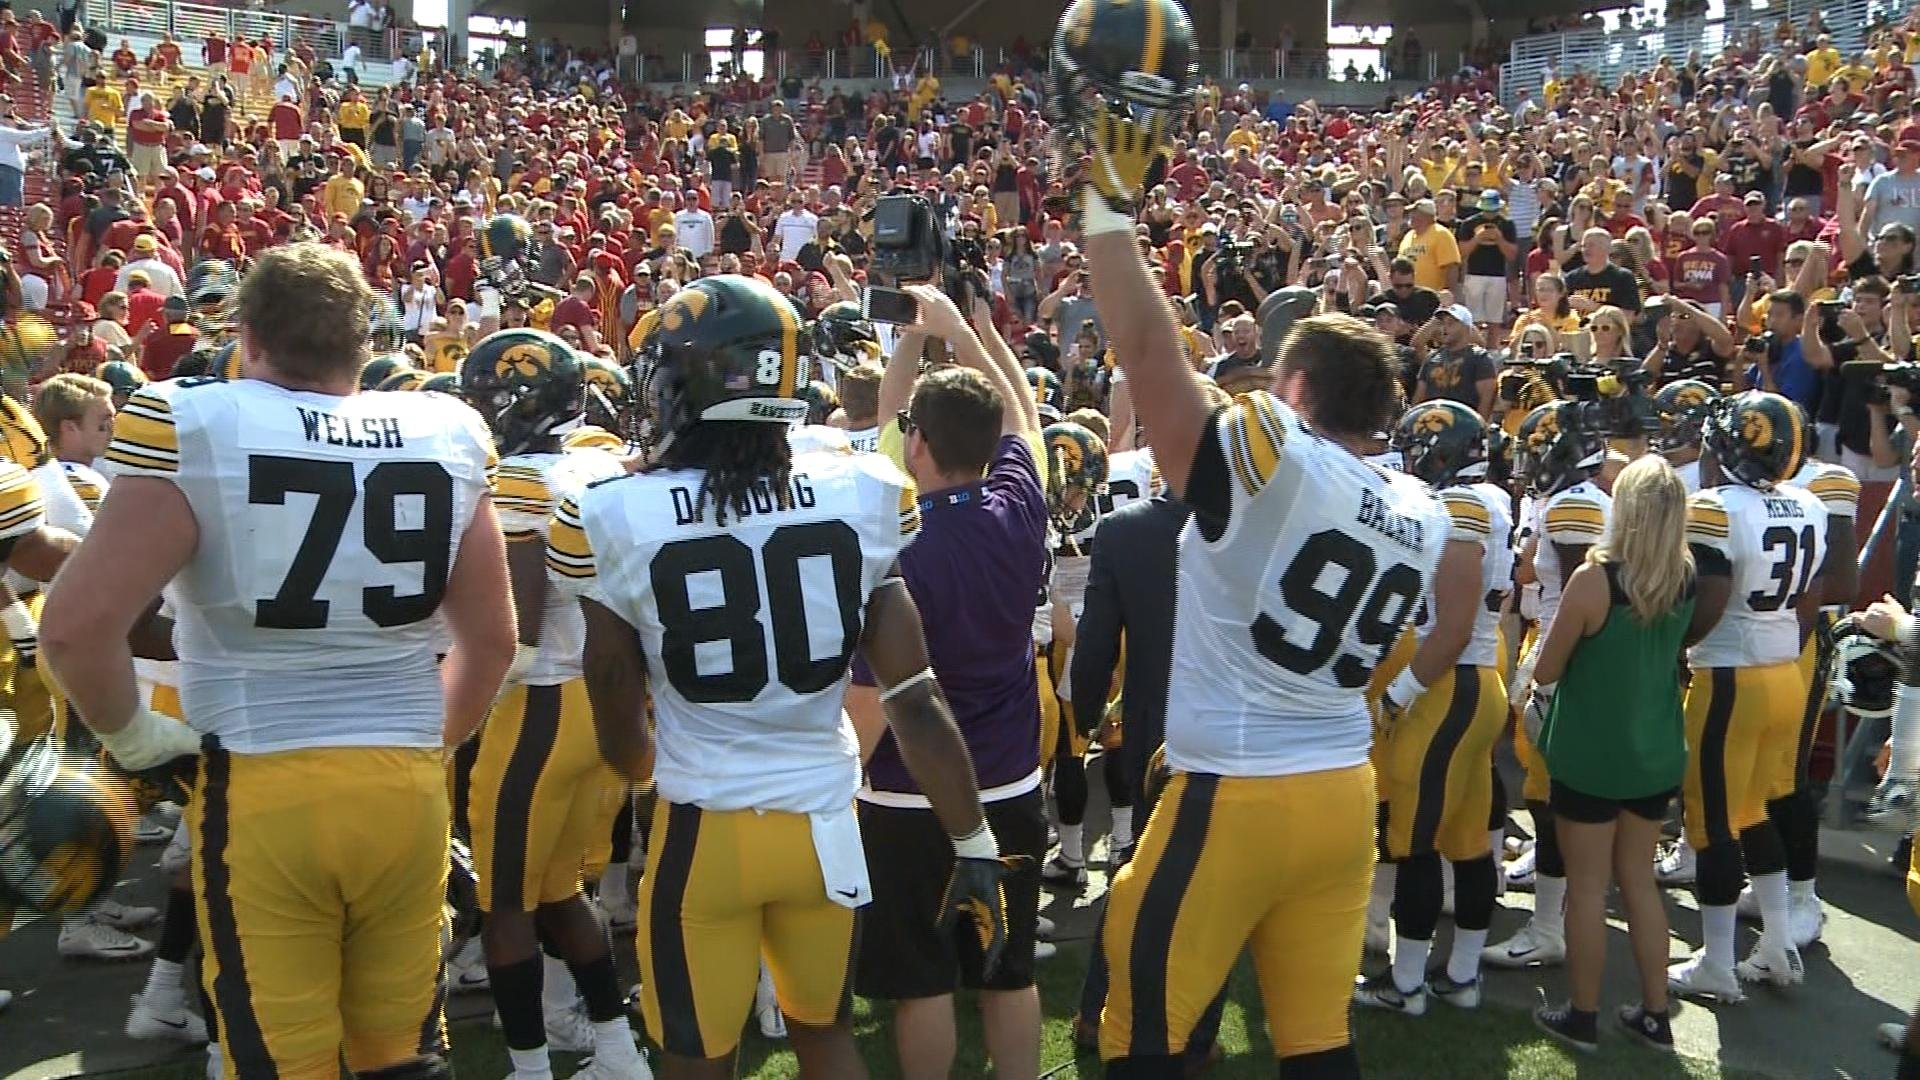 Hawkeyes Down Cyclones in Wild Overtime Game